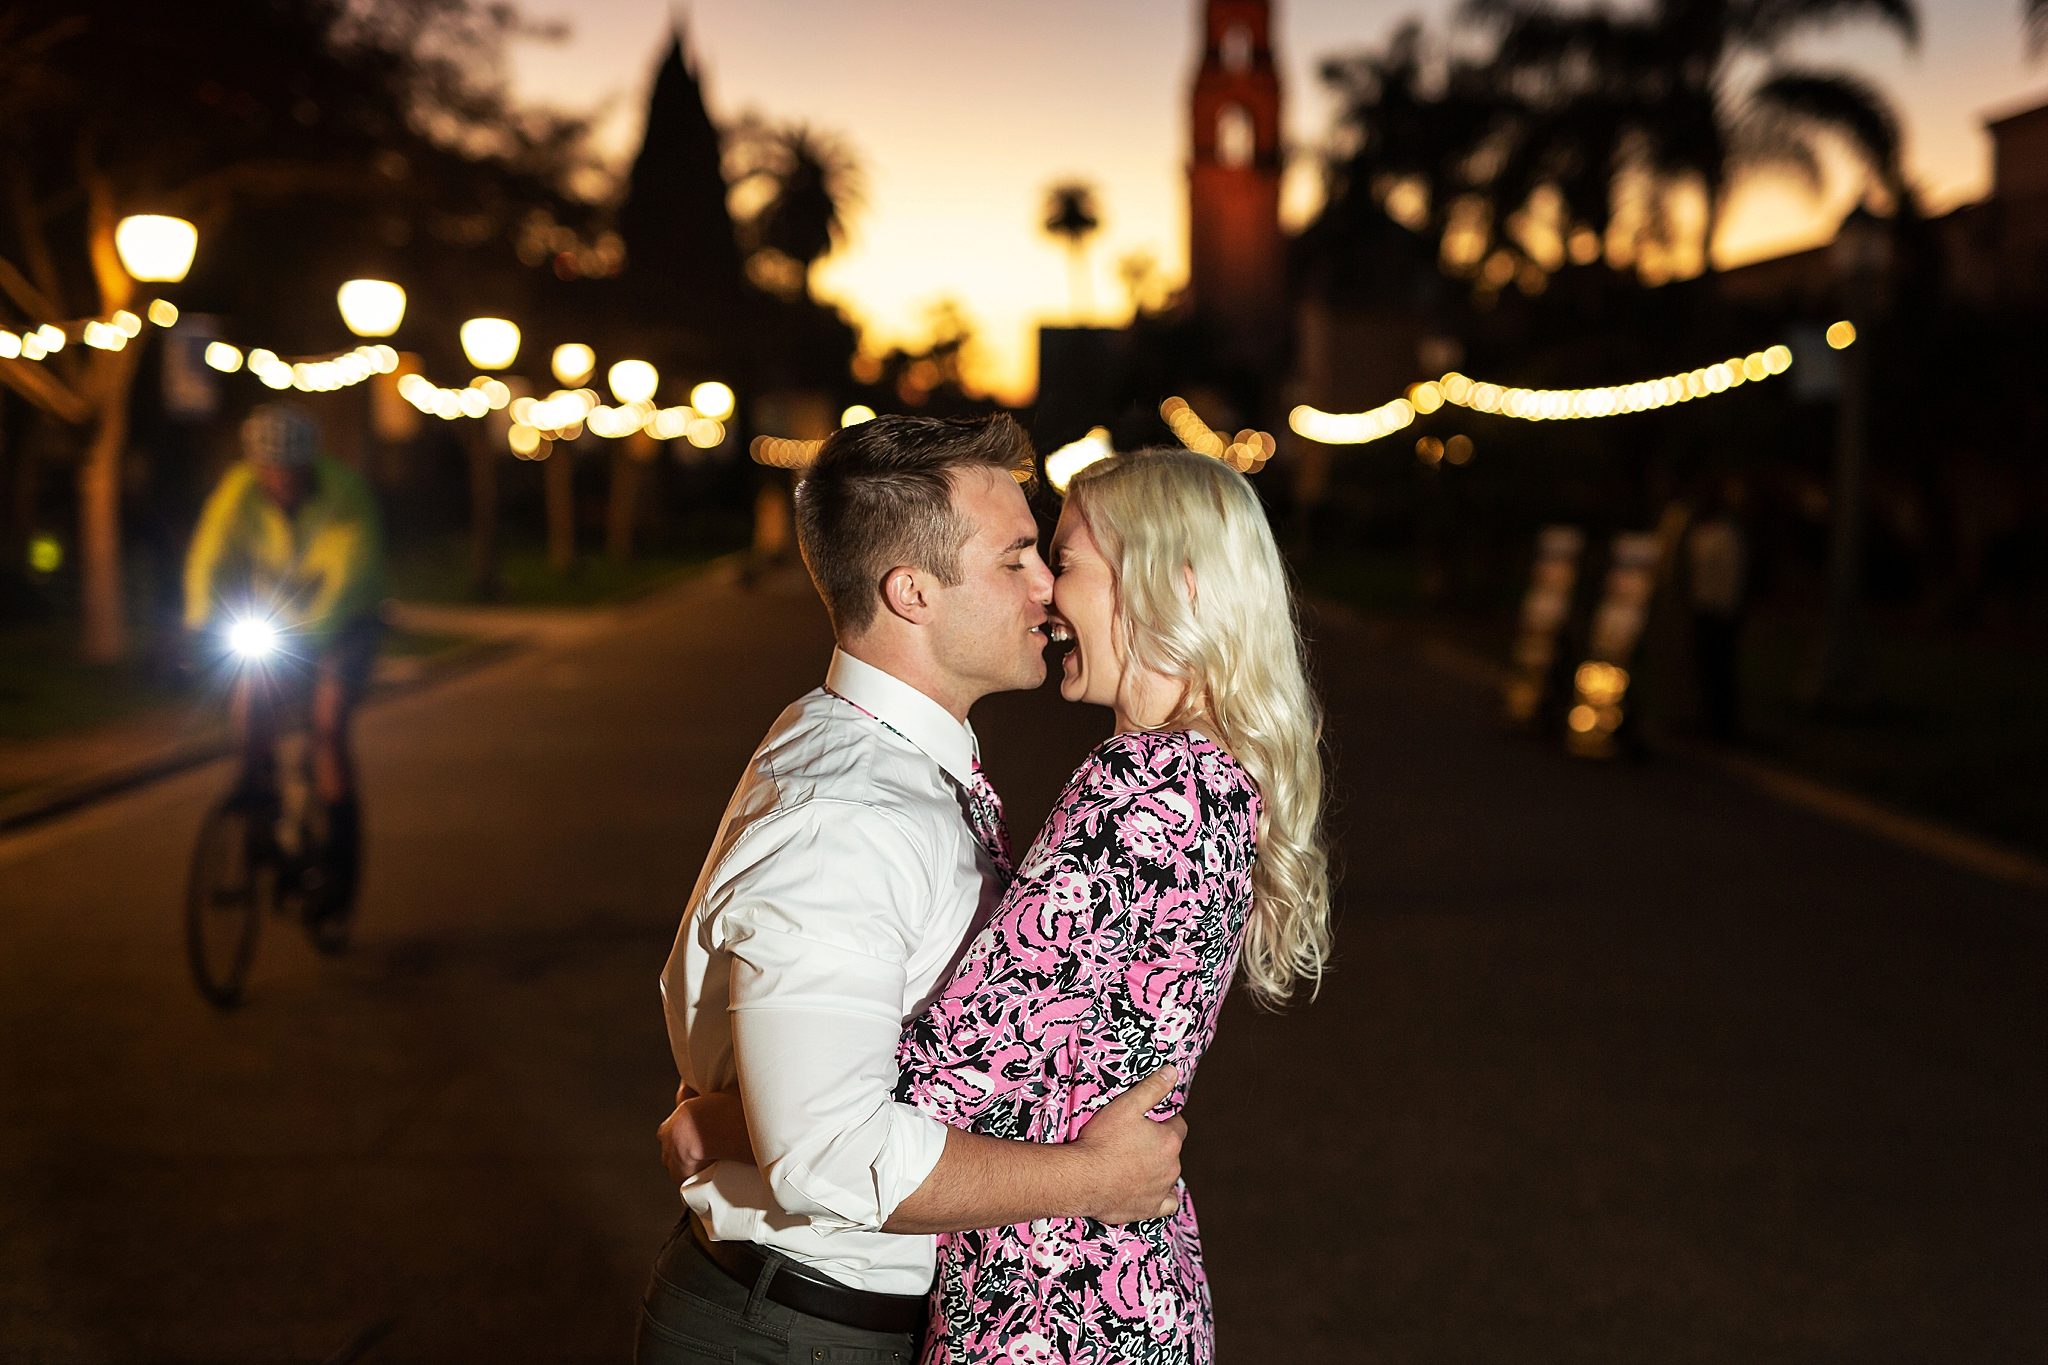 Balboa Park Engagement Session, San Diego California